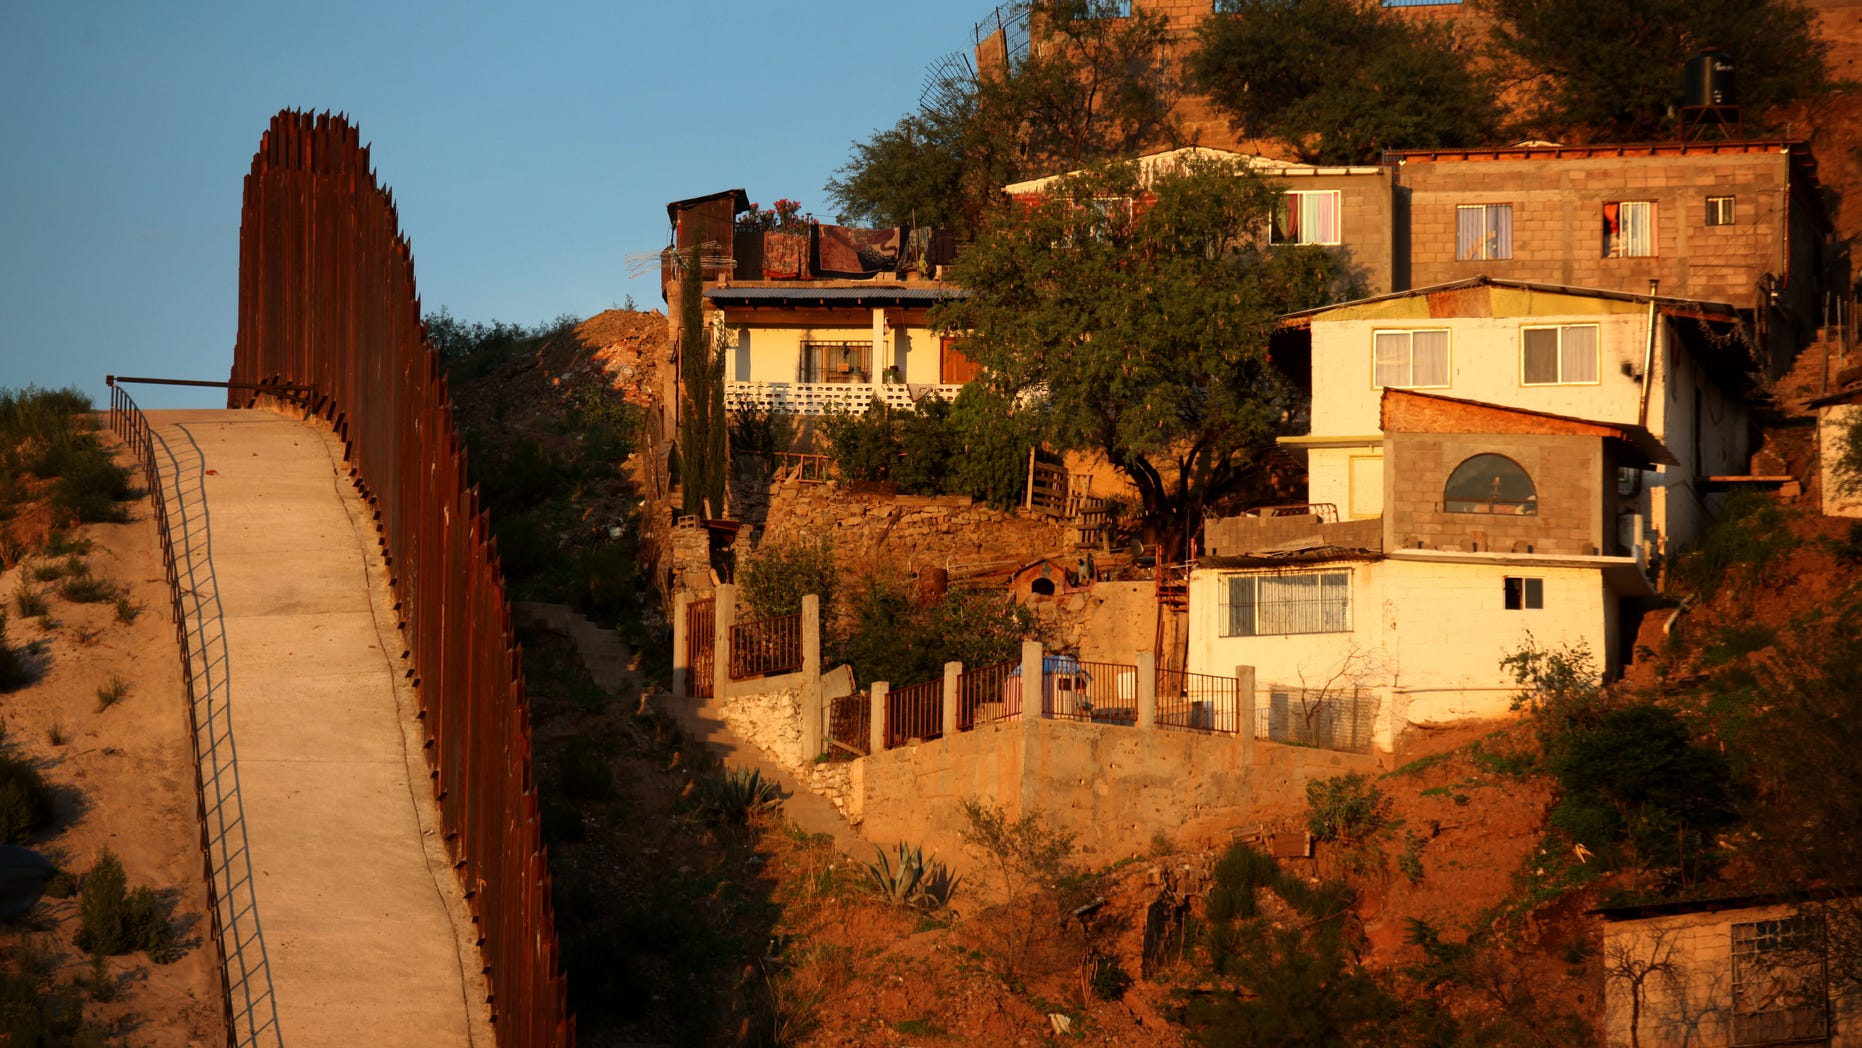 NOGALES, AZ - JULY 6:  The border wall between the U.S. and Mexico is seen July 6, 2012 in Nogales, Arizona. The president-elect of Mexico, Enrique Peña Nieto, stated  that he wants to expand his country's drug-war partnership with the United States but that he would not support the presence of armed American agents in Mexico.  (Photo by Sandy Huffaker/Getty Images)